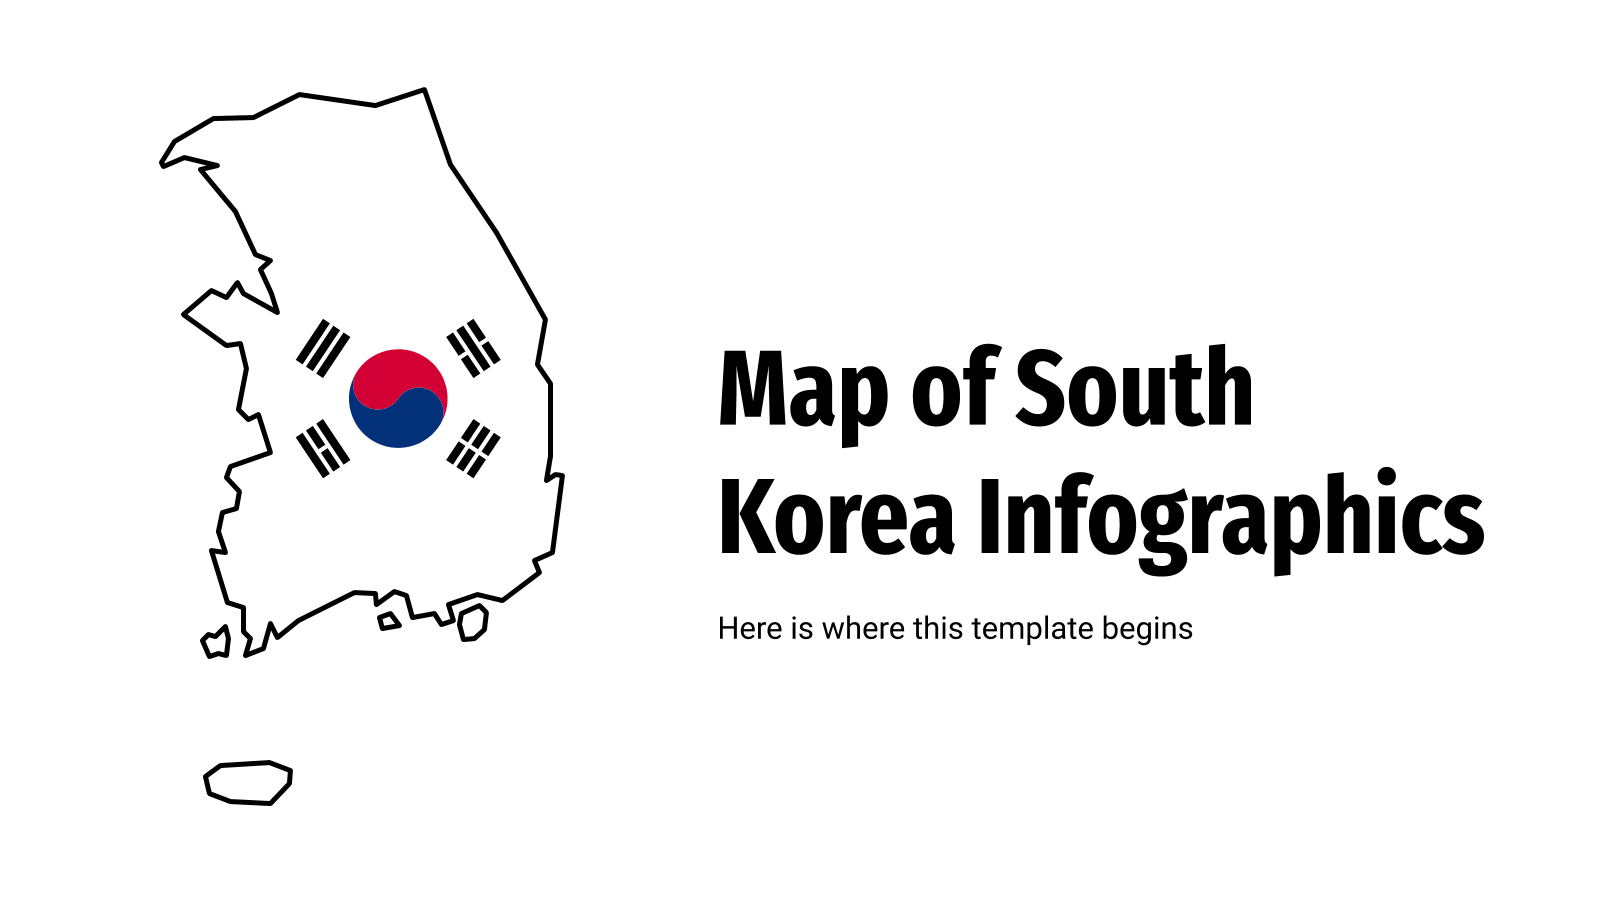 Map of South Korea Infographics presentation template